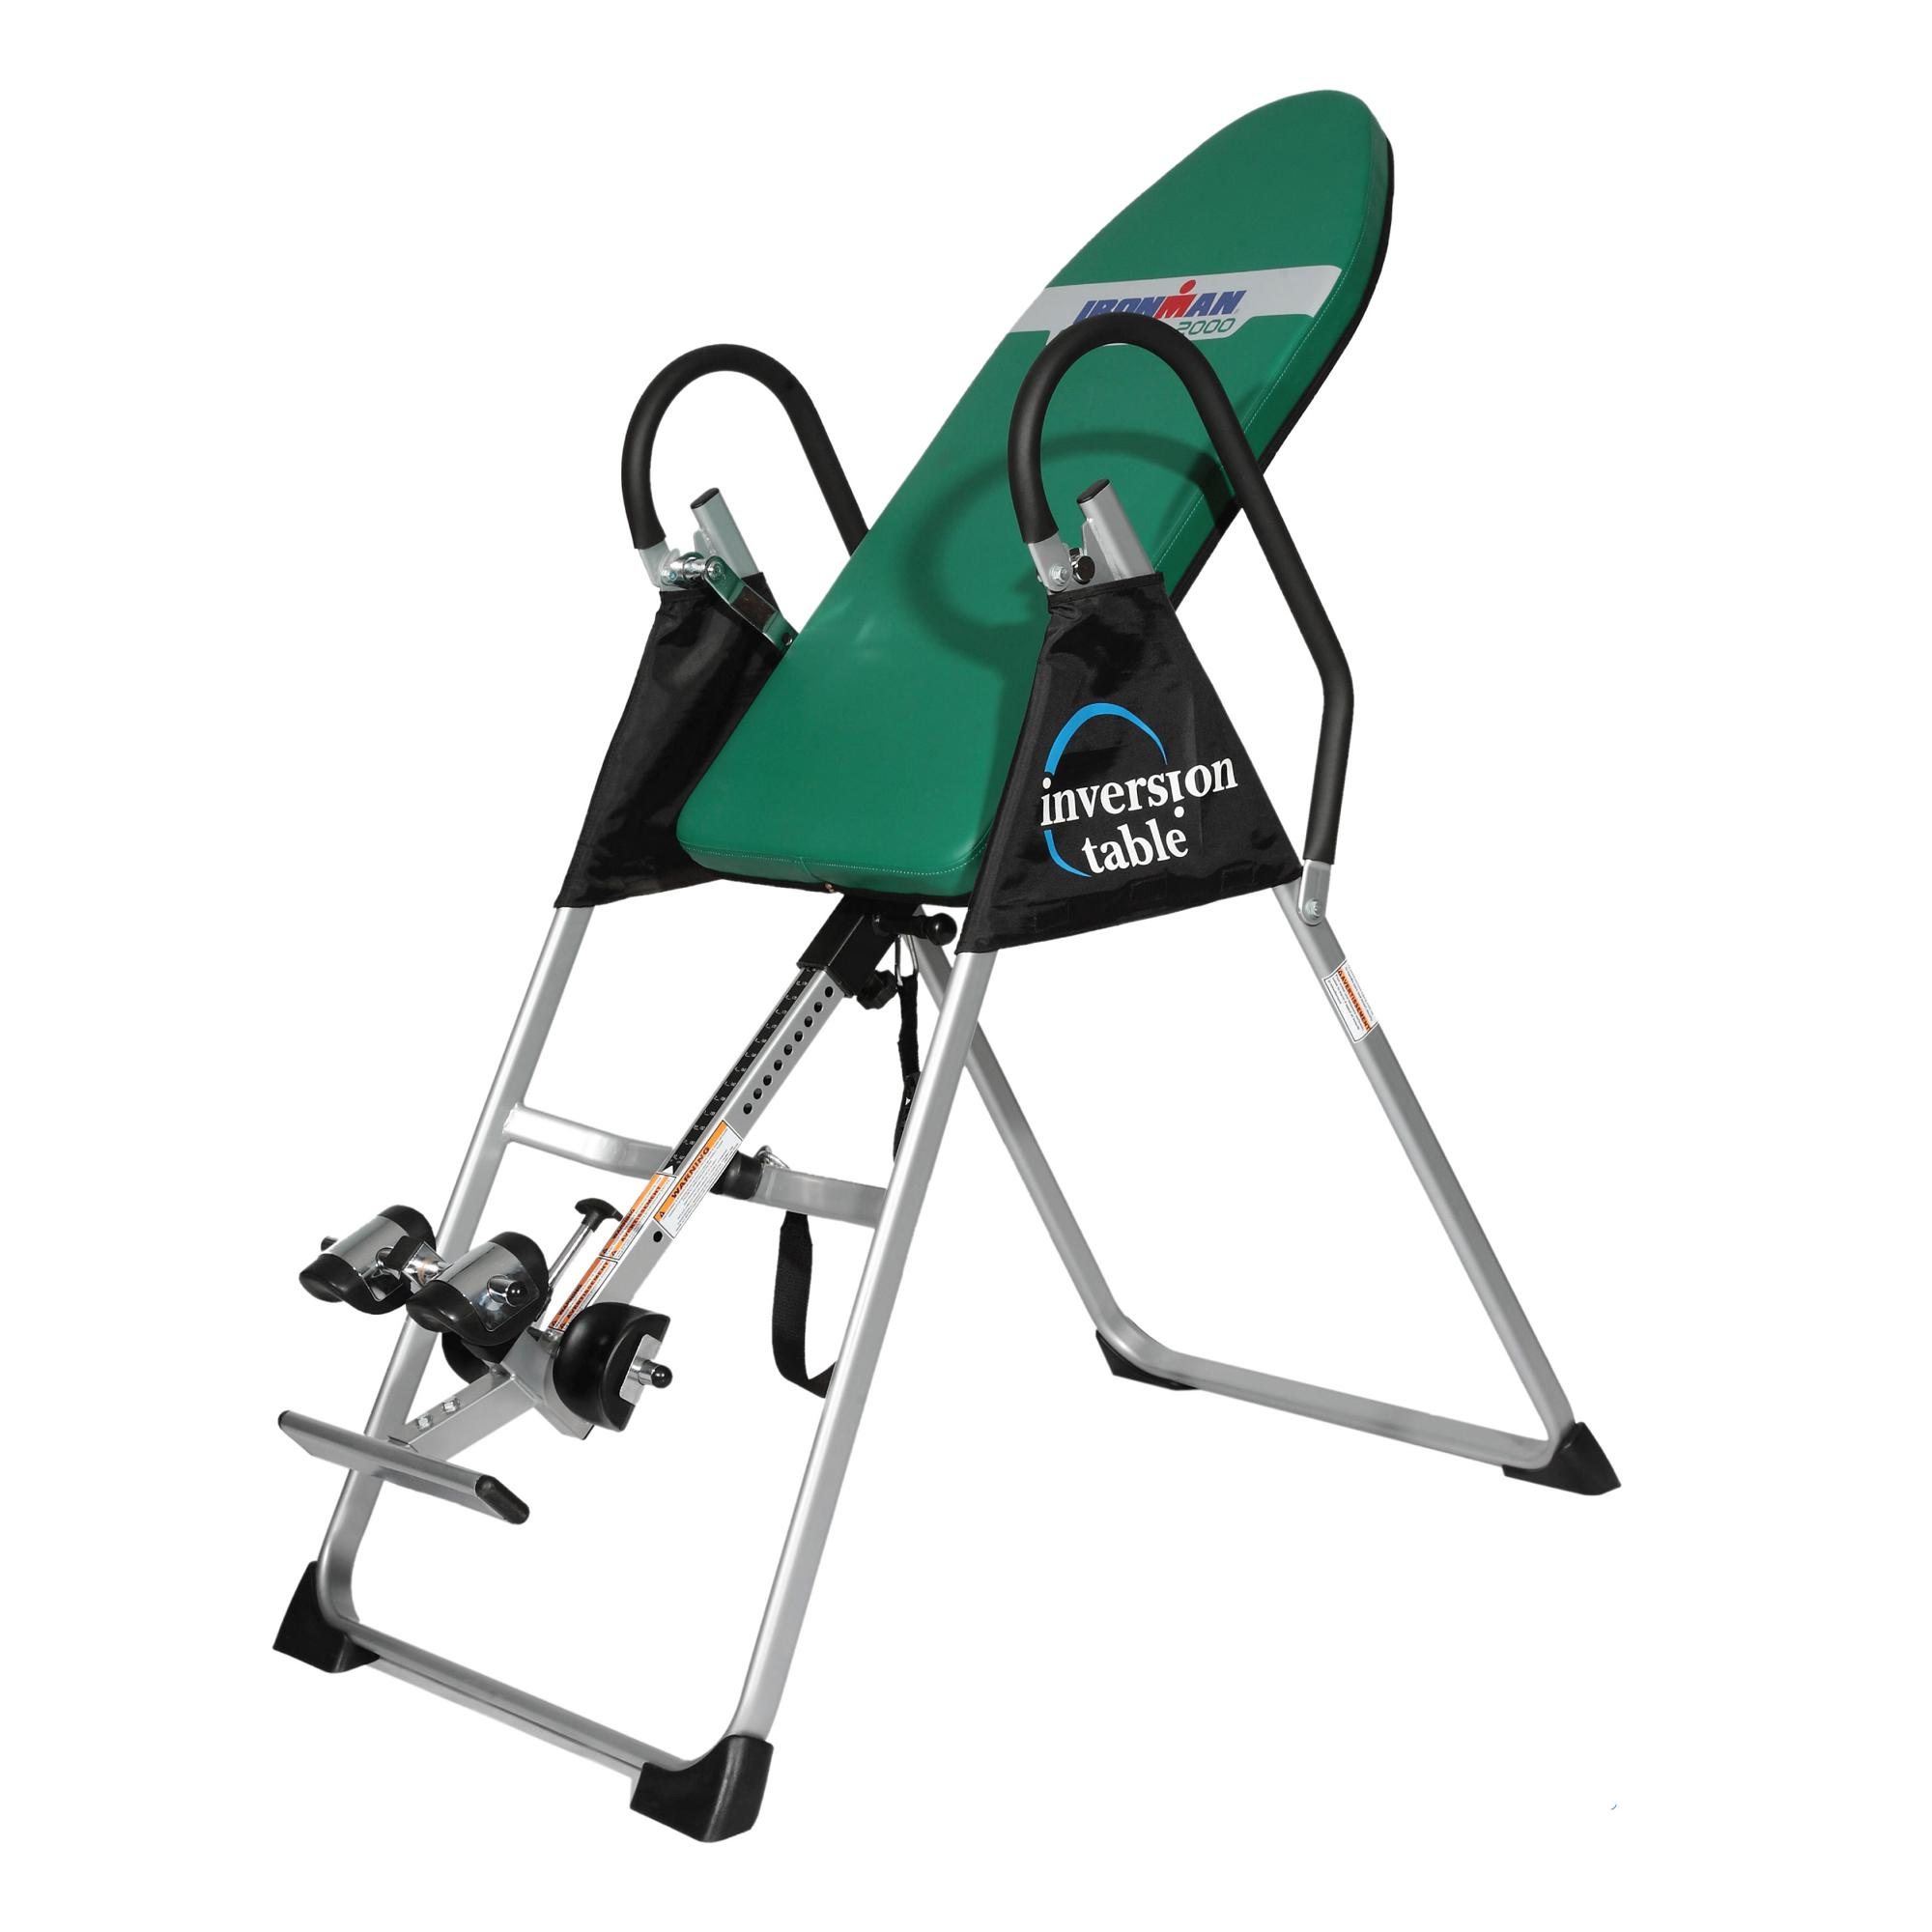 Ironman gravity 2000 inversion table for Table inversion